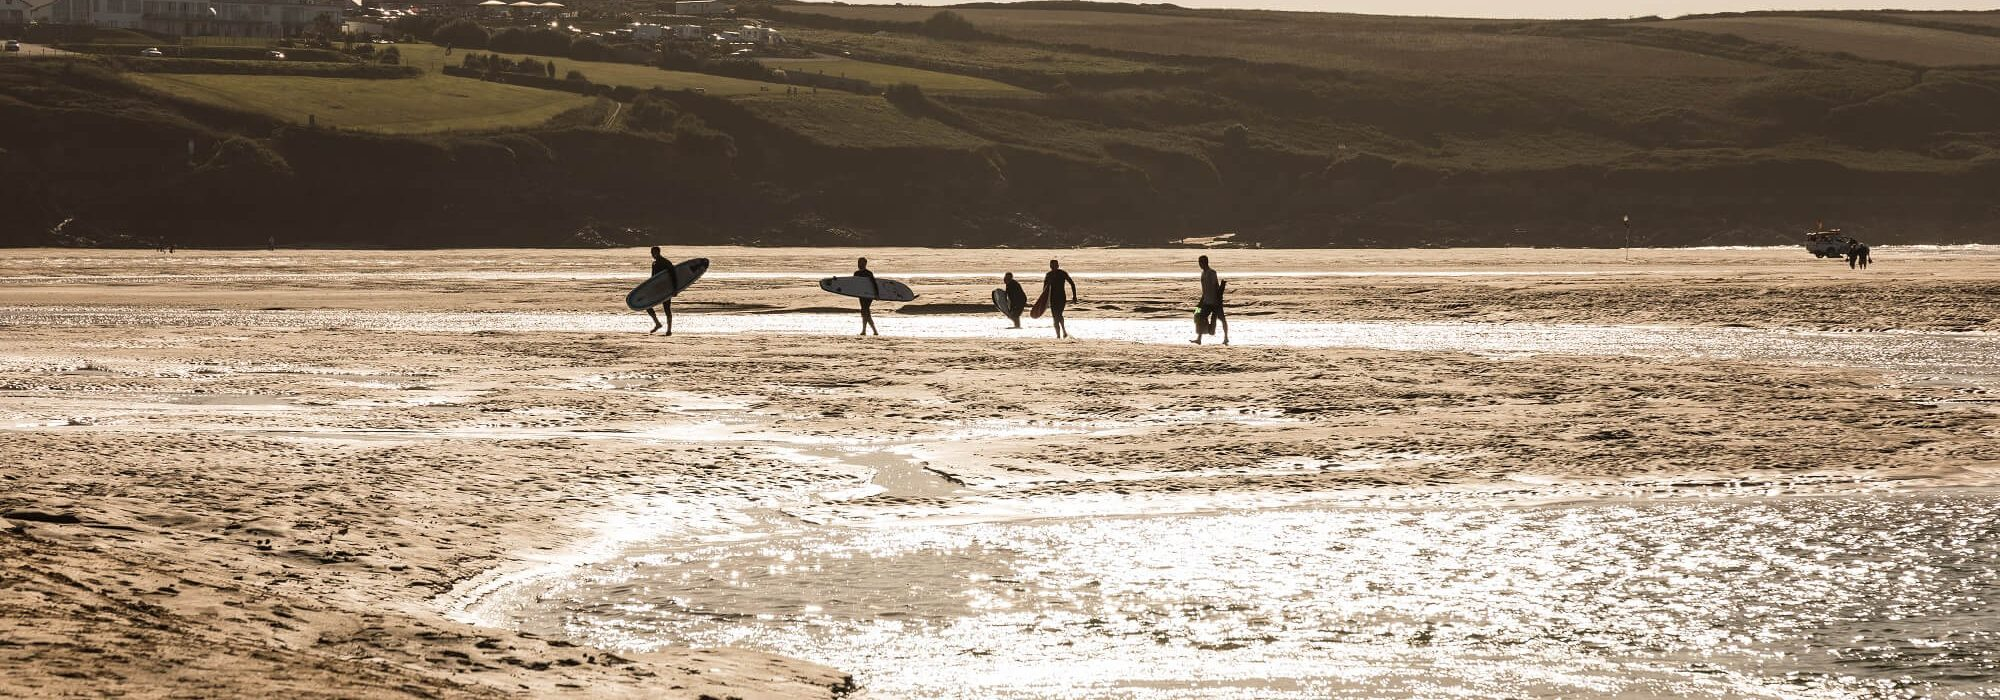 CrantockBeach Surfers.jpeg 2000x700 - Contact